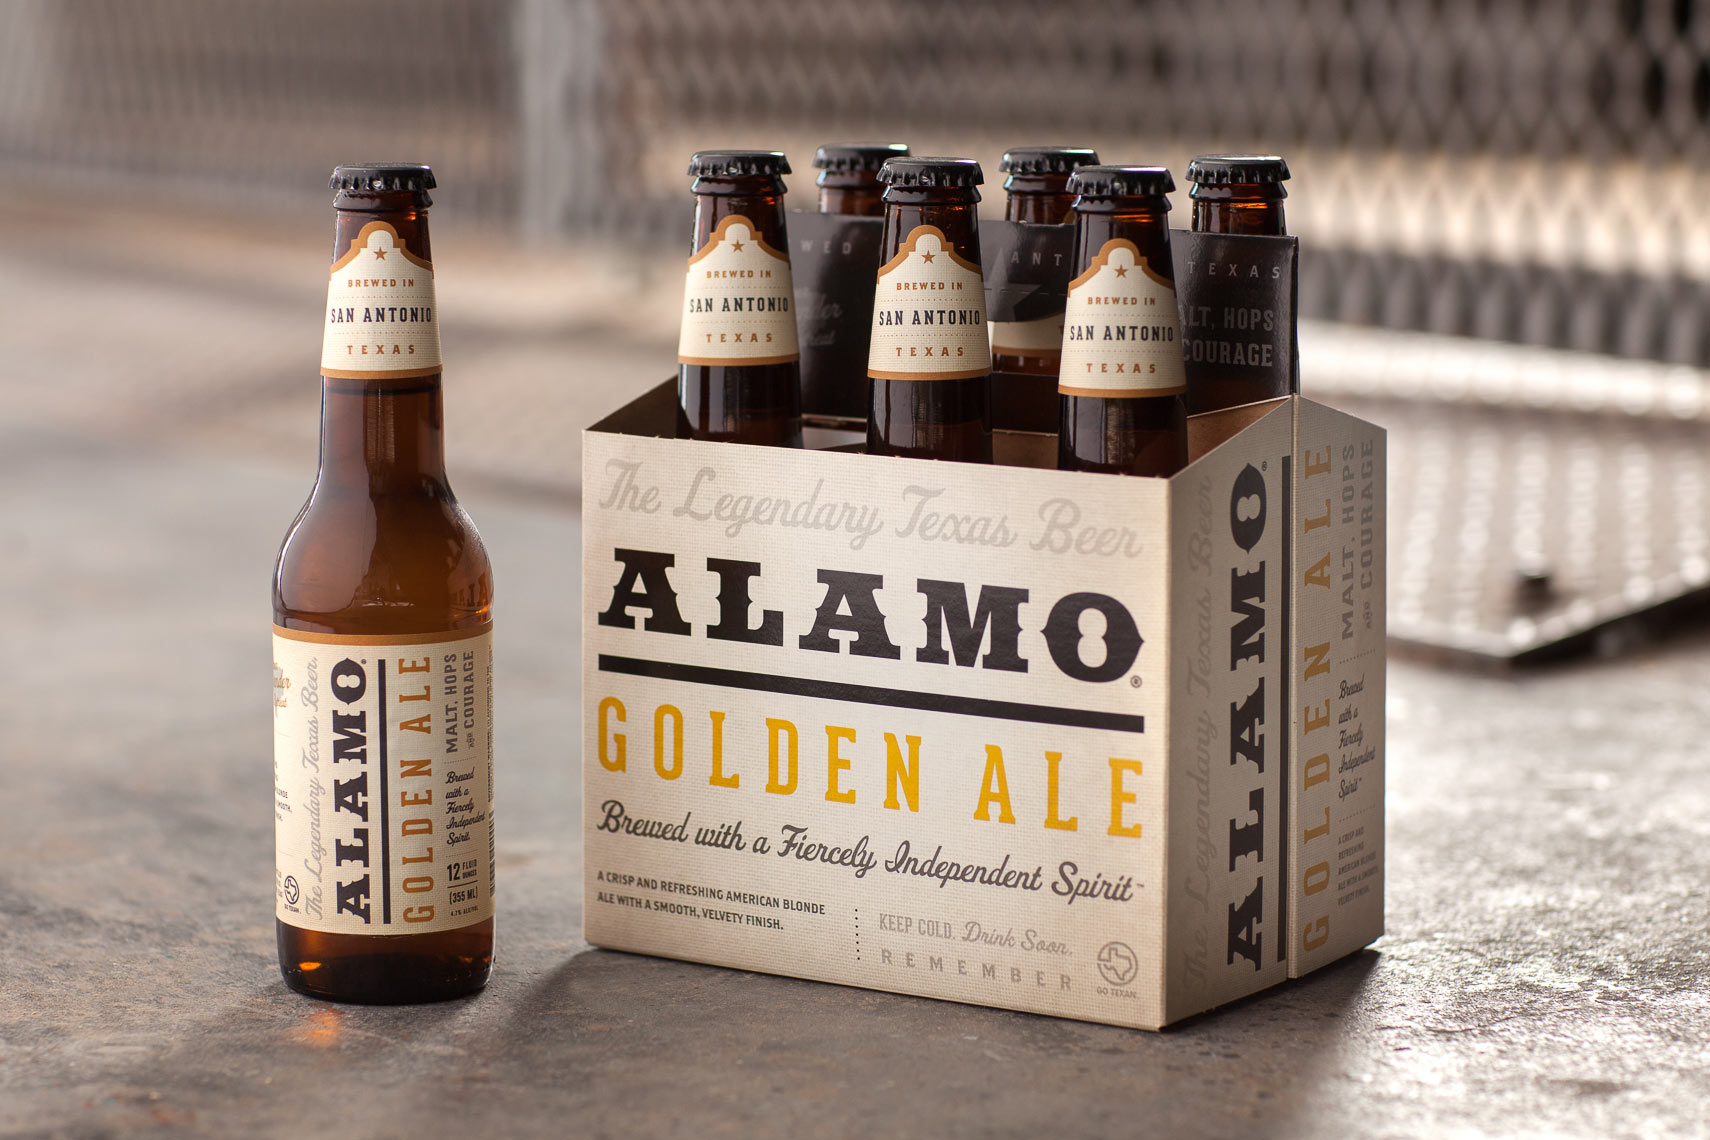 alamo-beer-san-antonio-texas-jason-risner-photography-1991